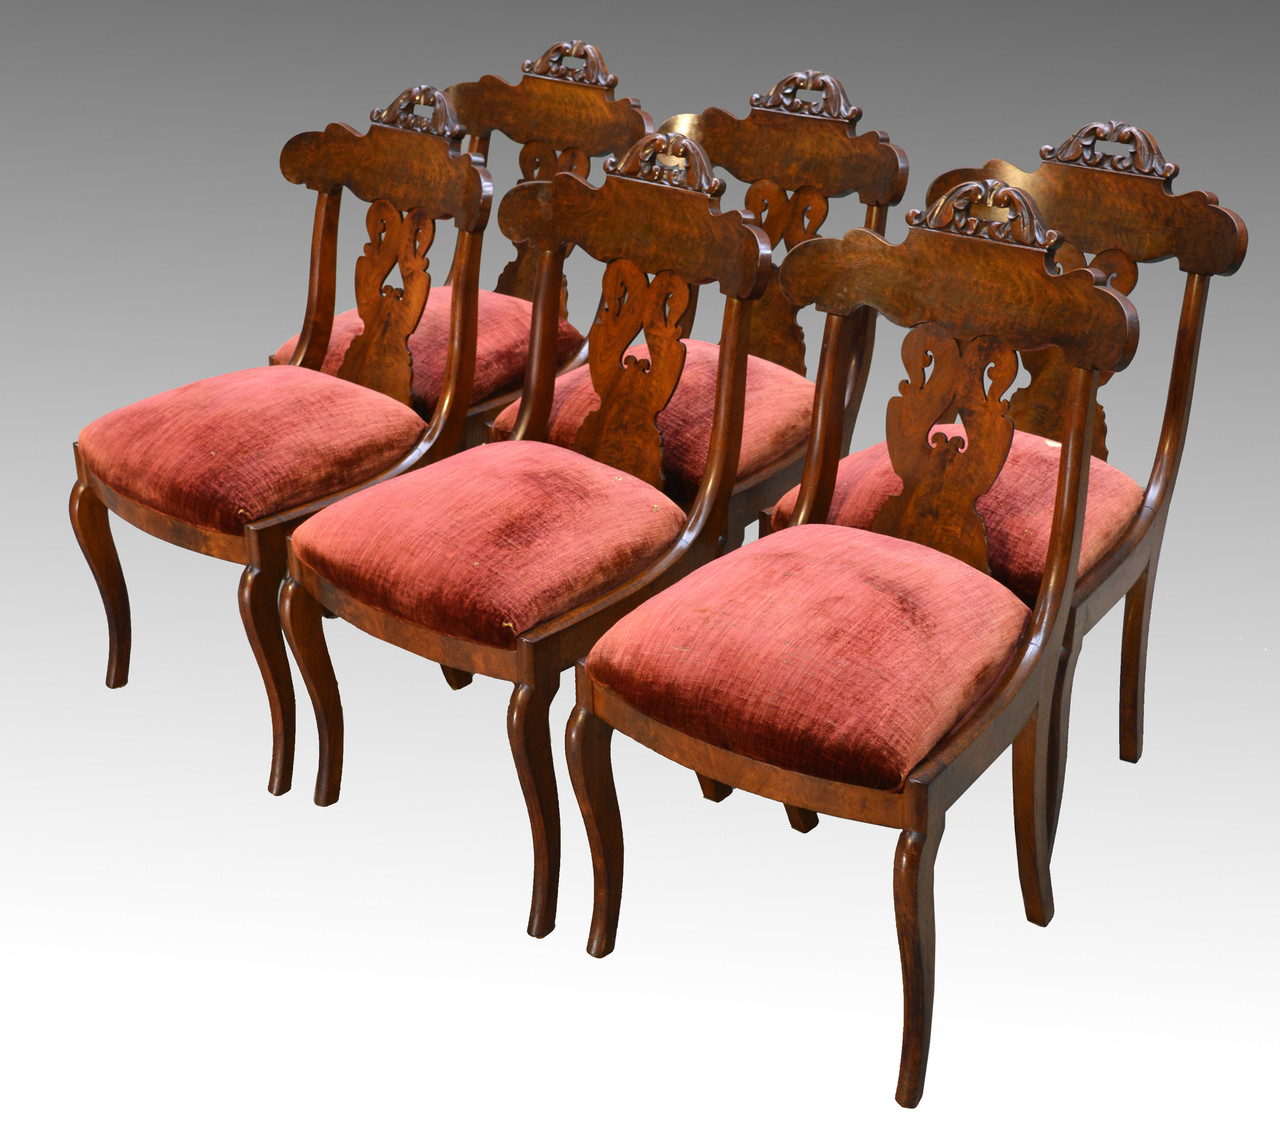 Image 1 - SOLD Antique Set Of 6 Period Empire Civil War Era Dining Chairs